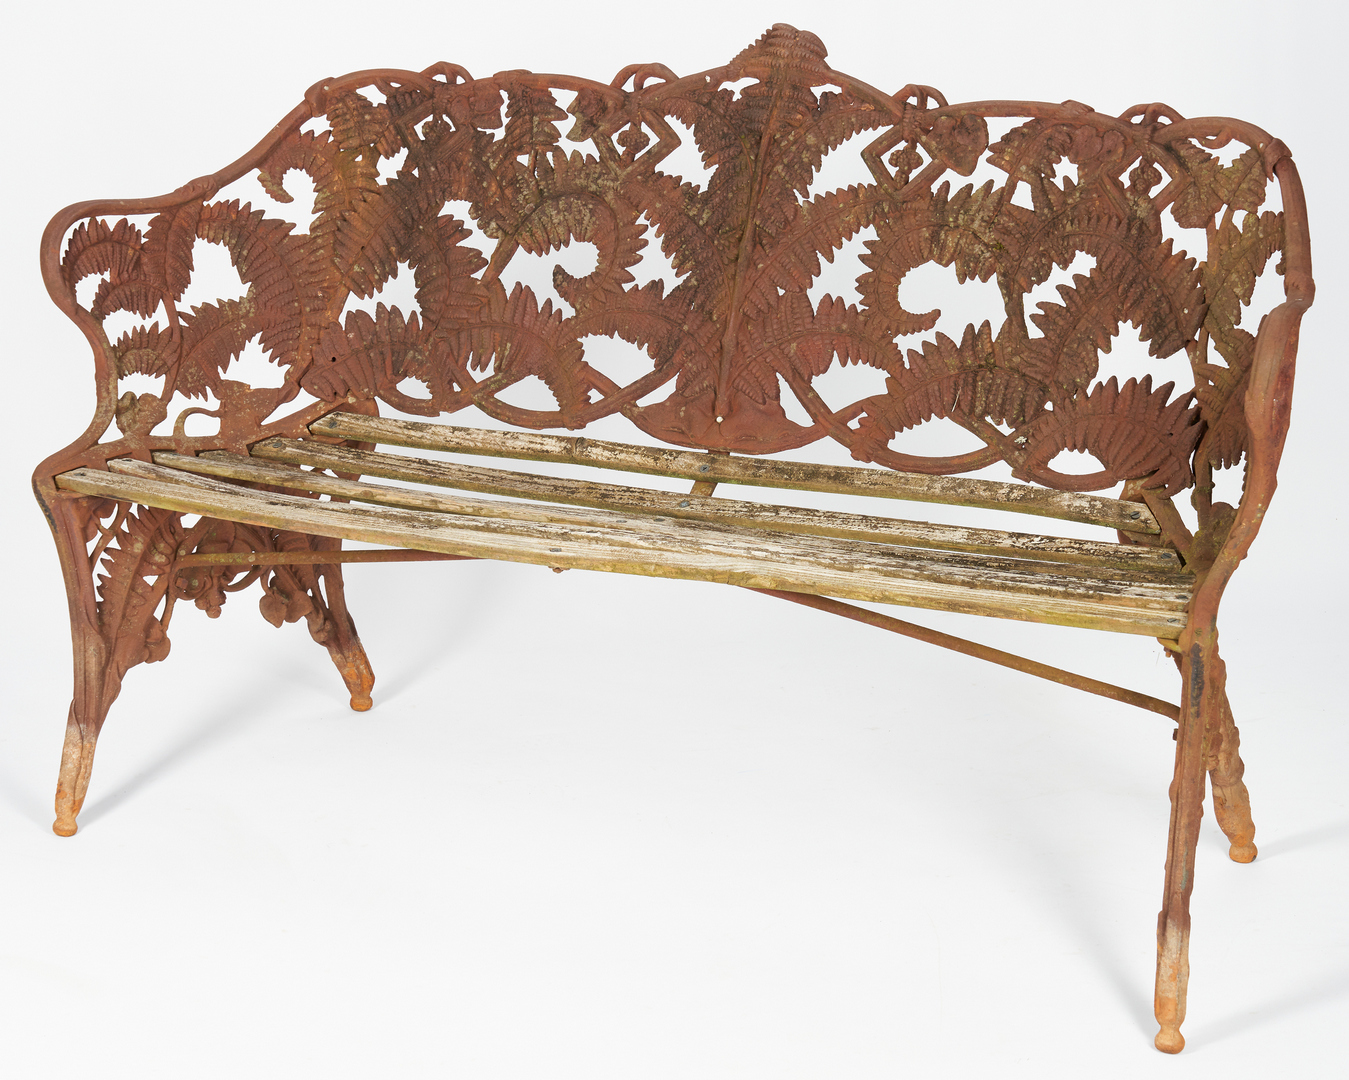 Lot 407: Near Pair Cast Iron Garden Benches, 1 signed